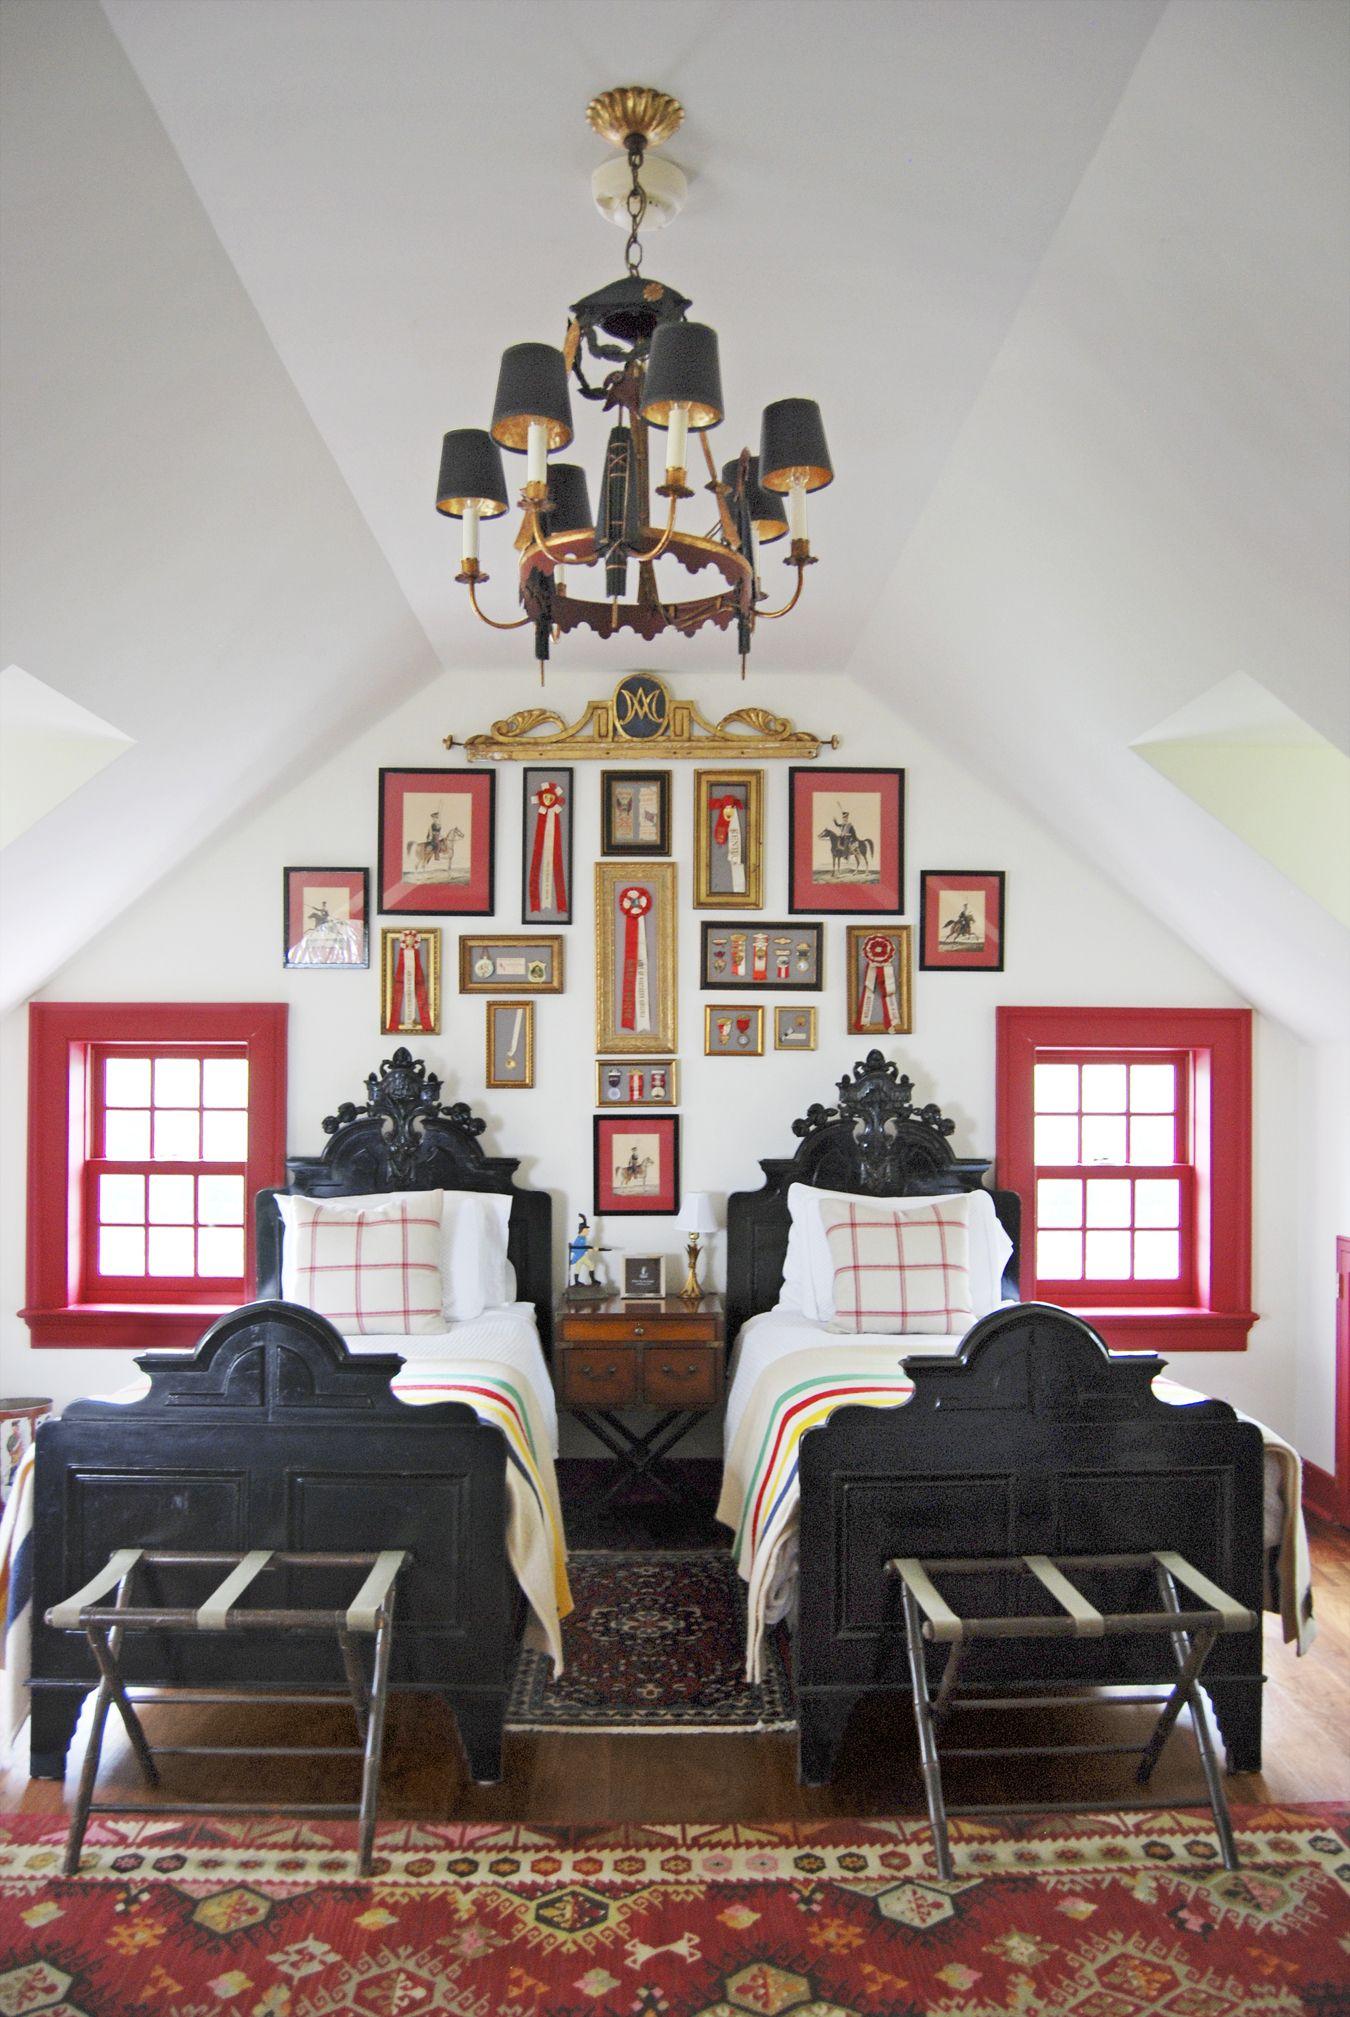 50 Rooms in 50 States - Decorating Across America